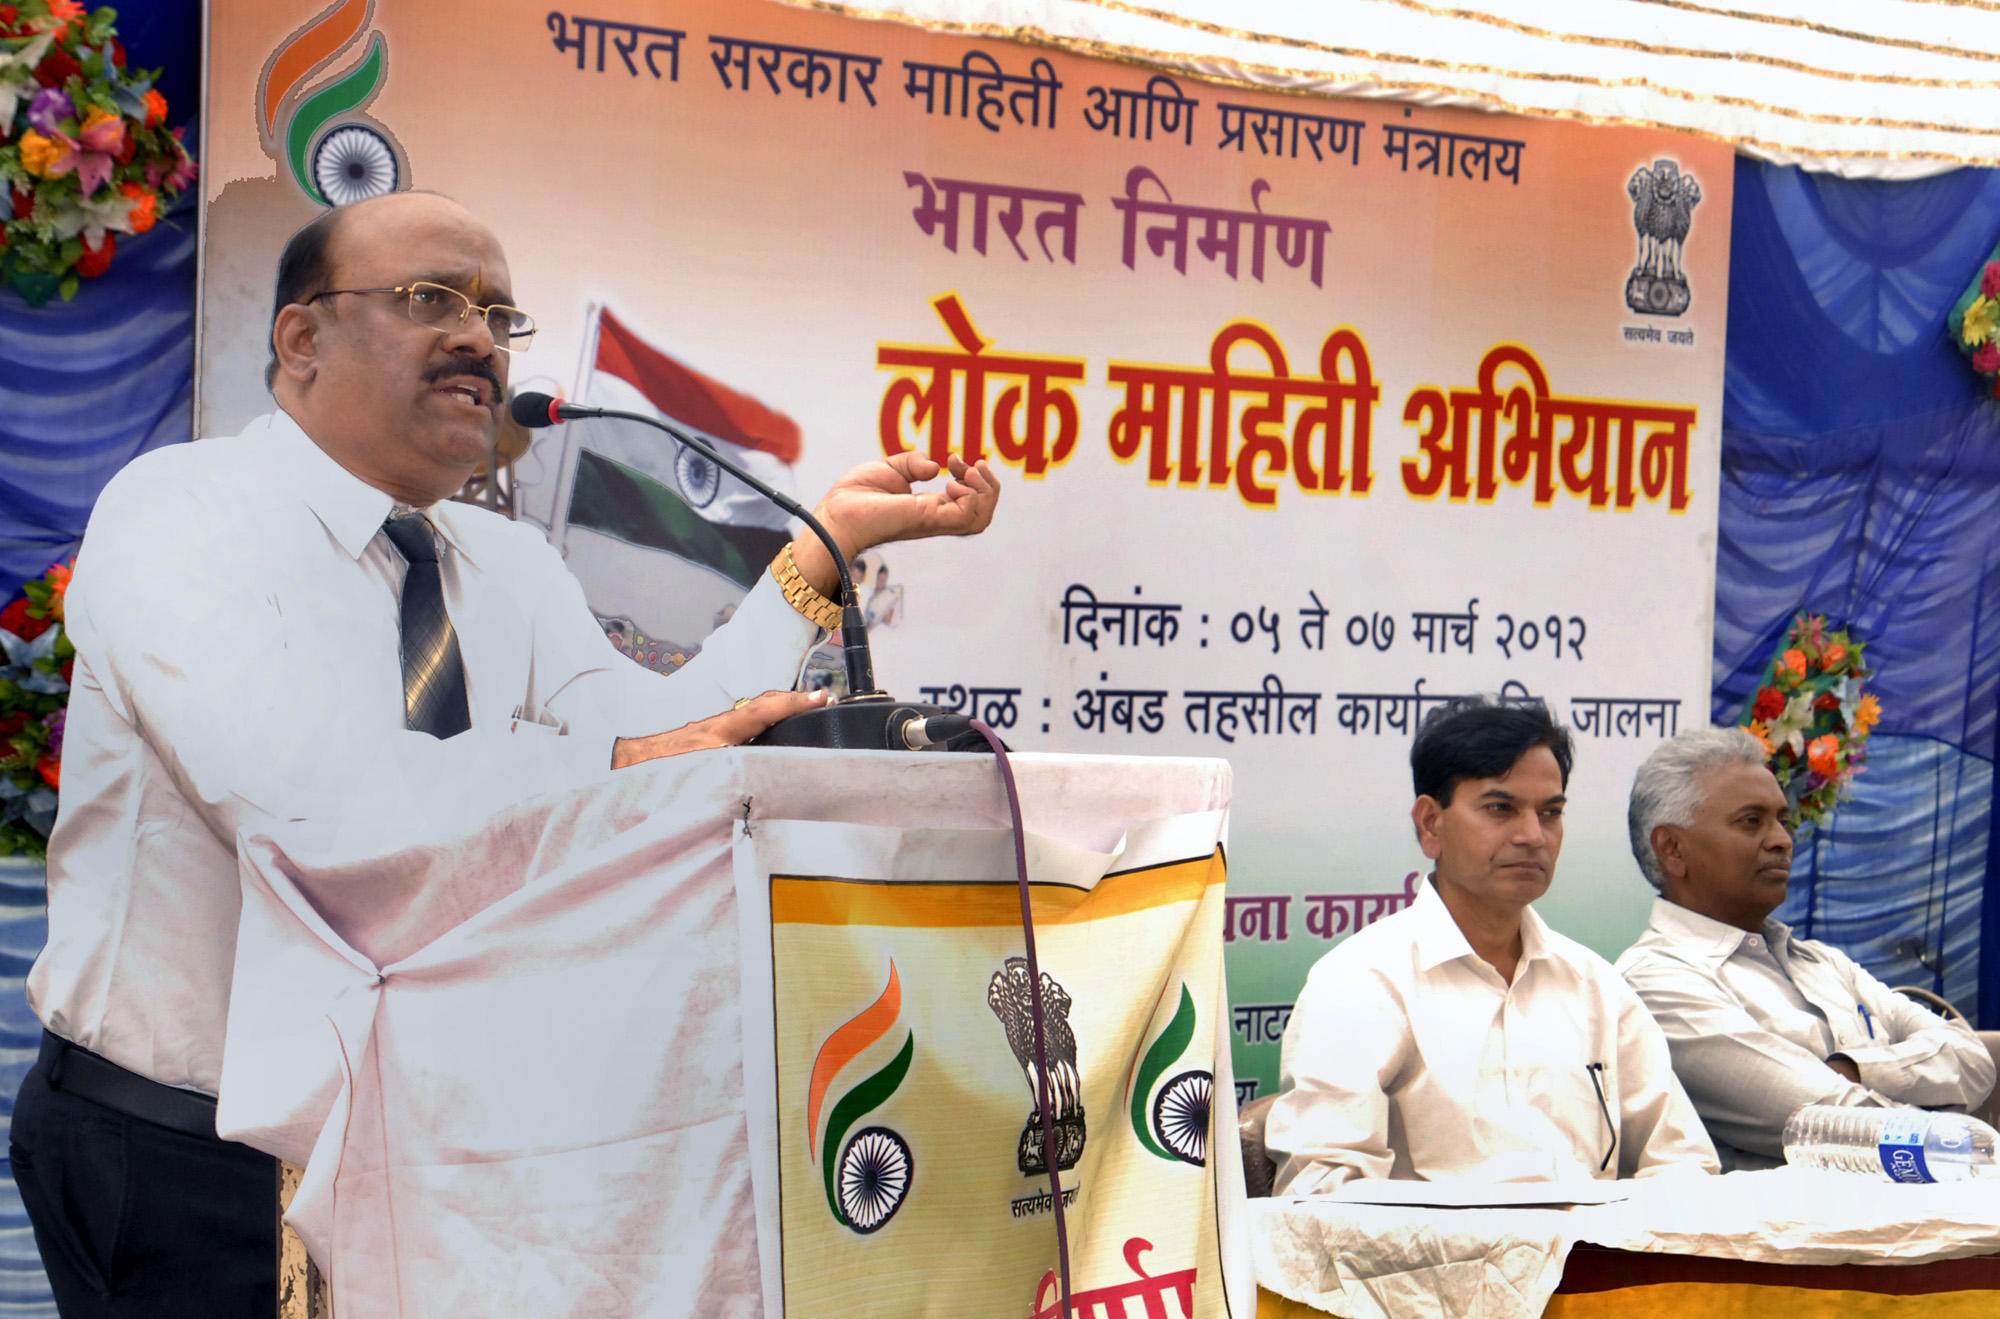 images of Home Media Events Press Releases Reports Govt Programmes